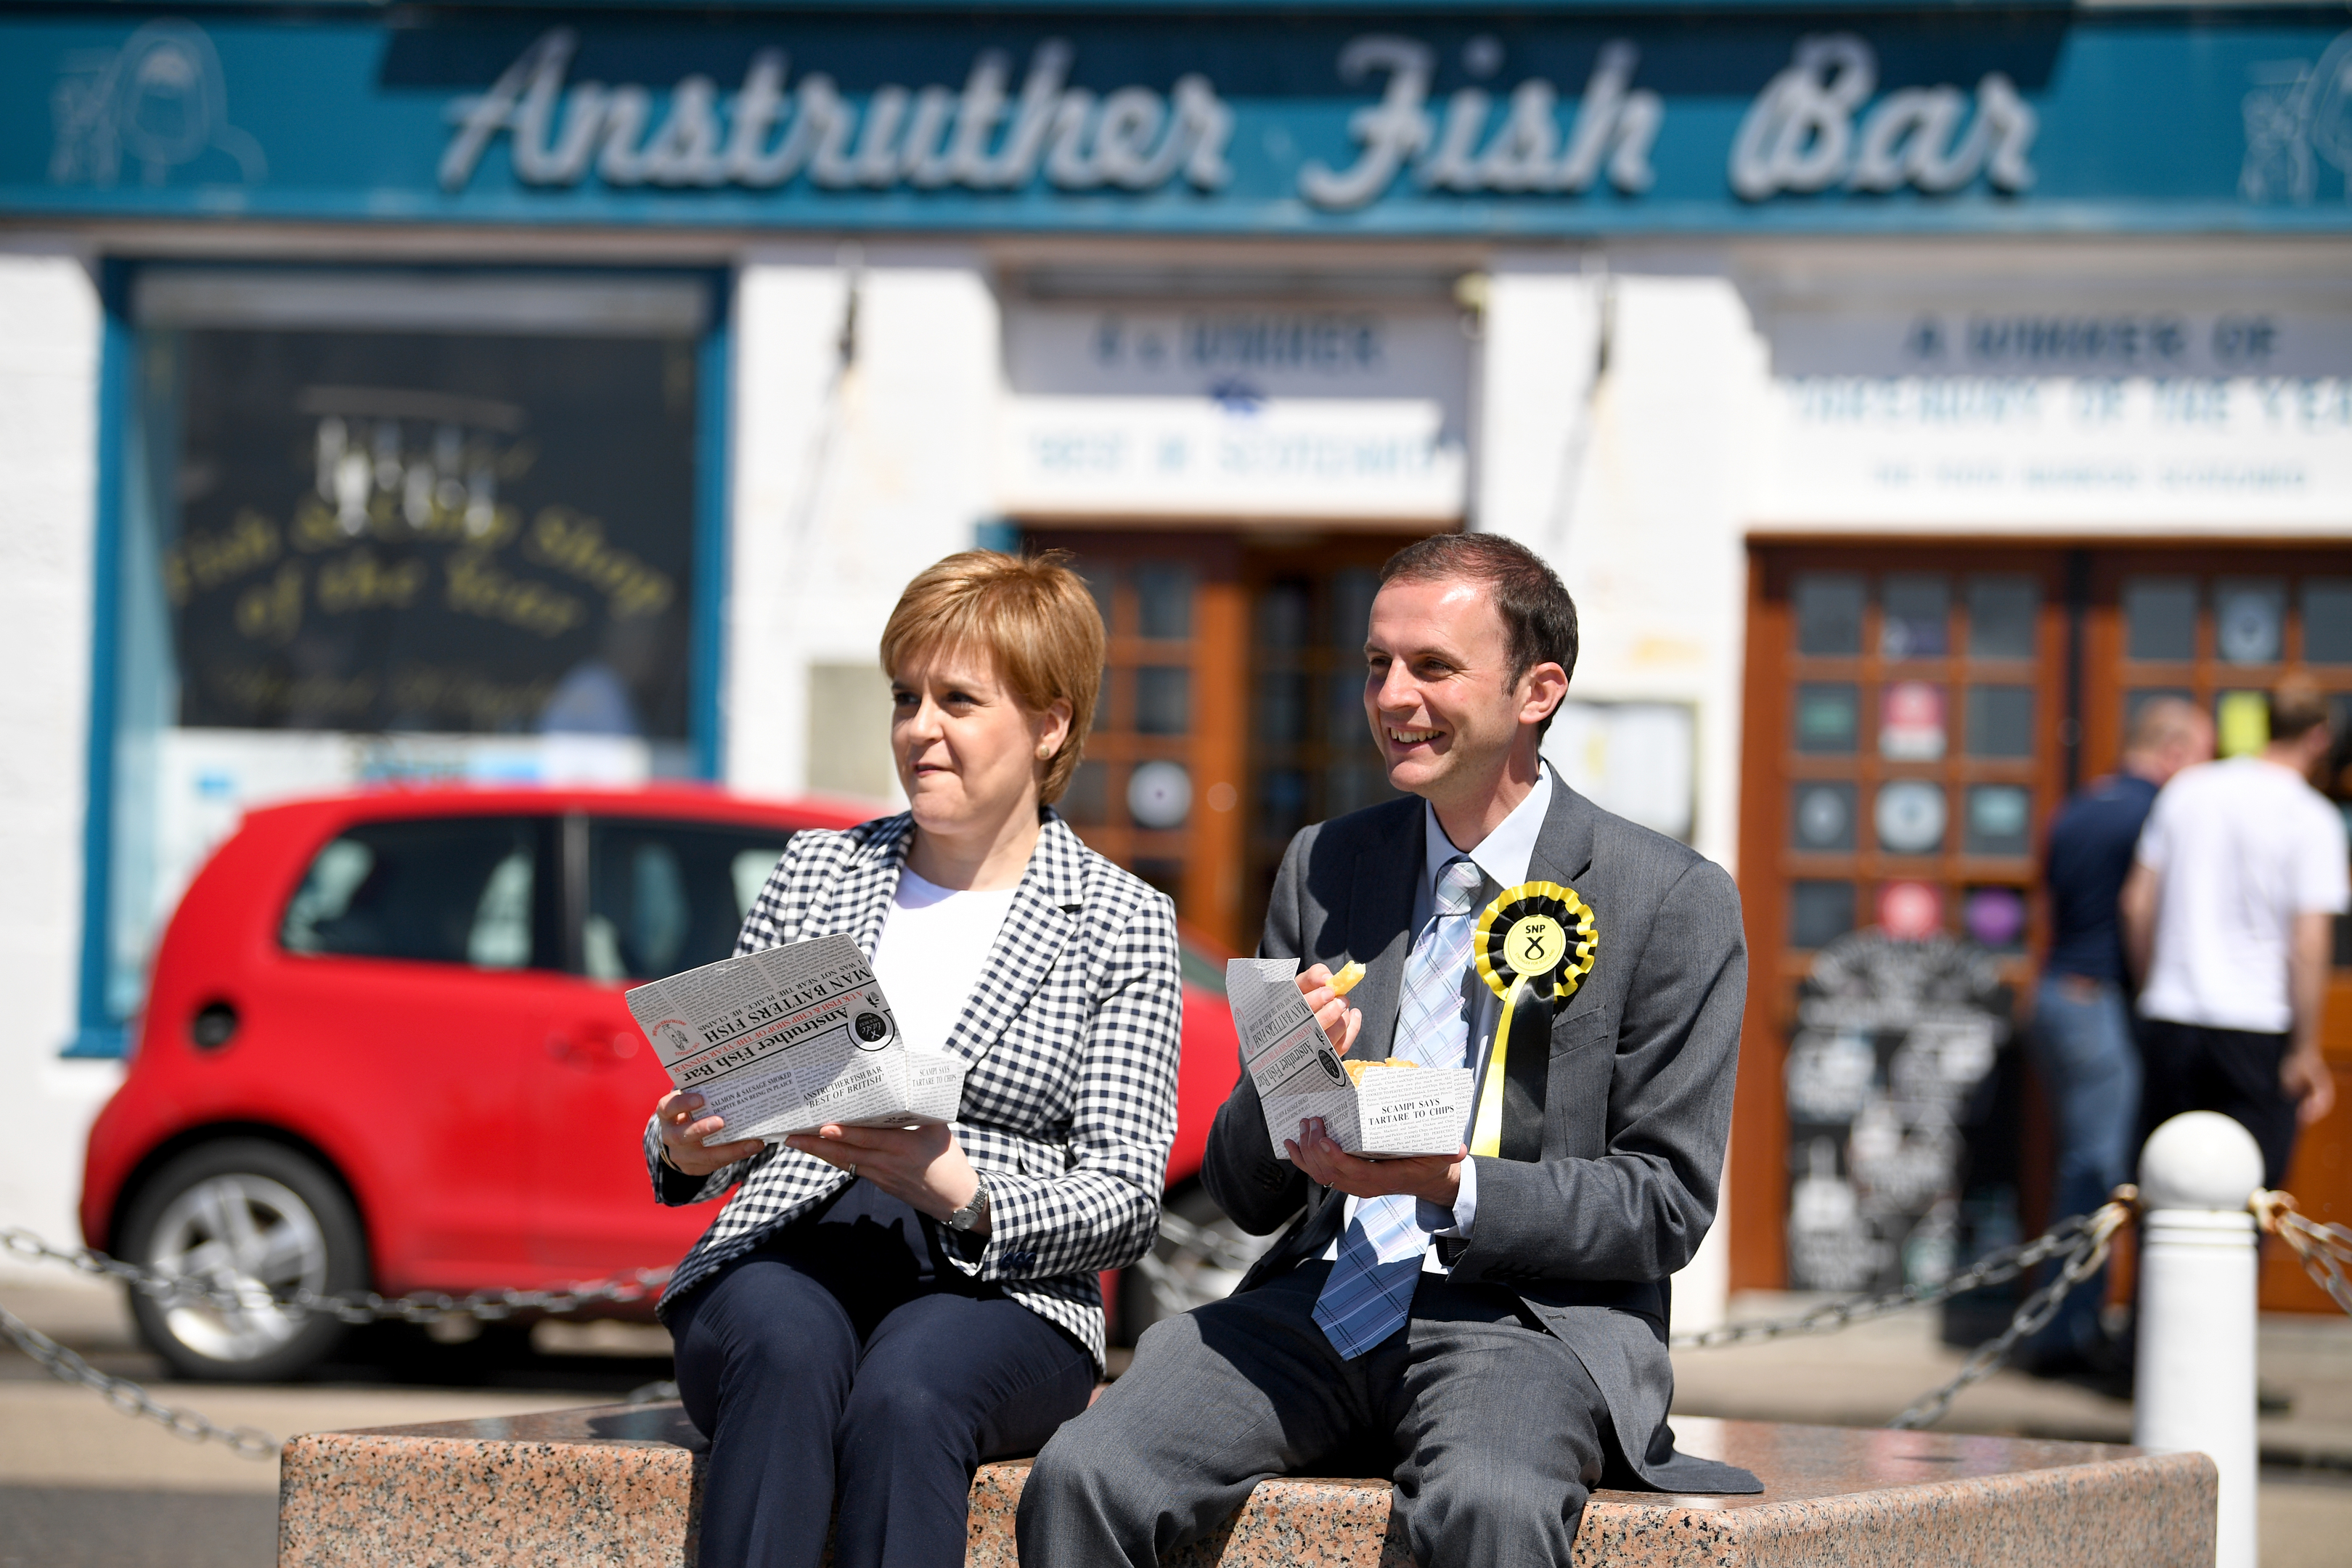 SNP leader Nicola Sturgeon eats chips as she campaigns with candidate Stephen Gethins in Anstruther.